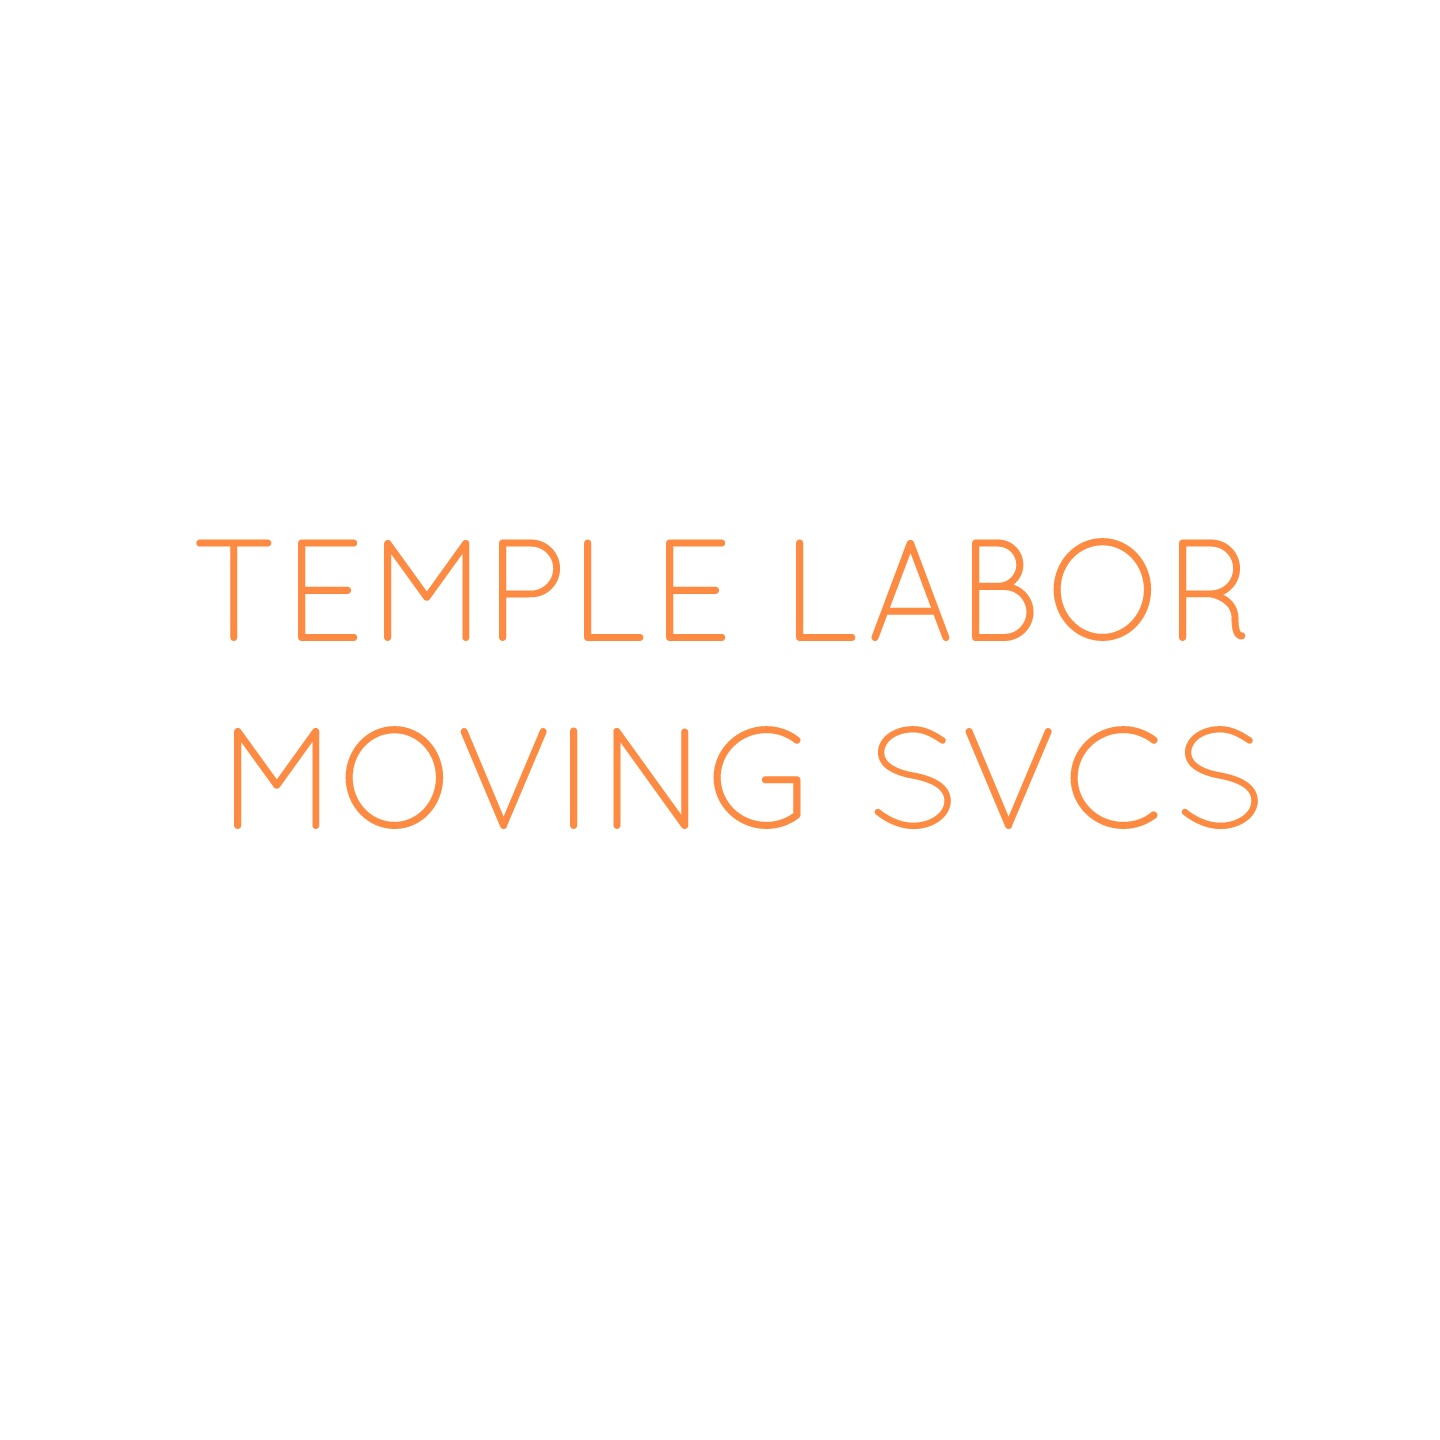 Temple Labor Moving Services